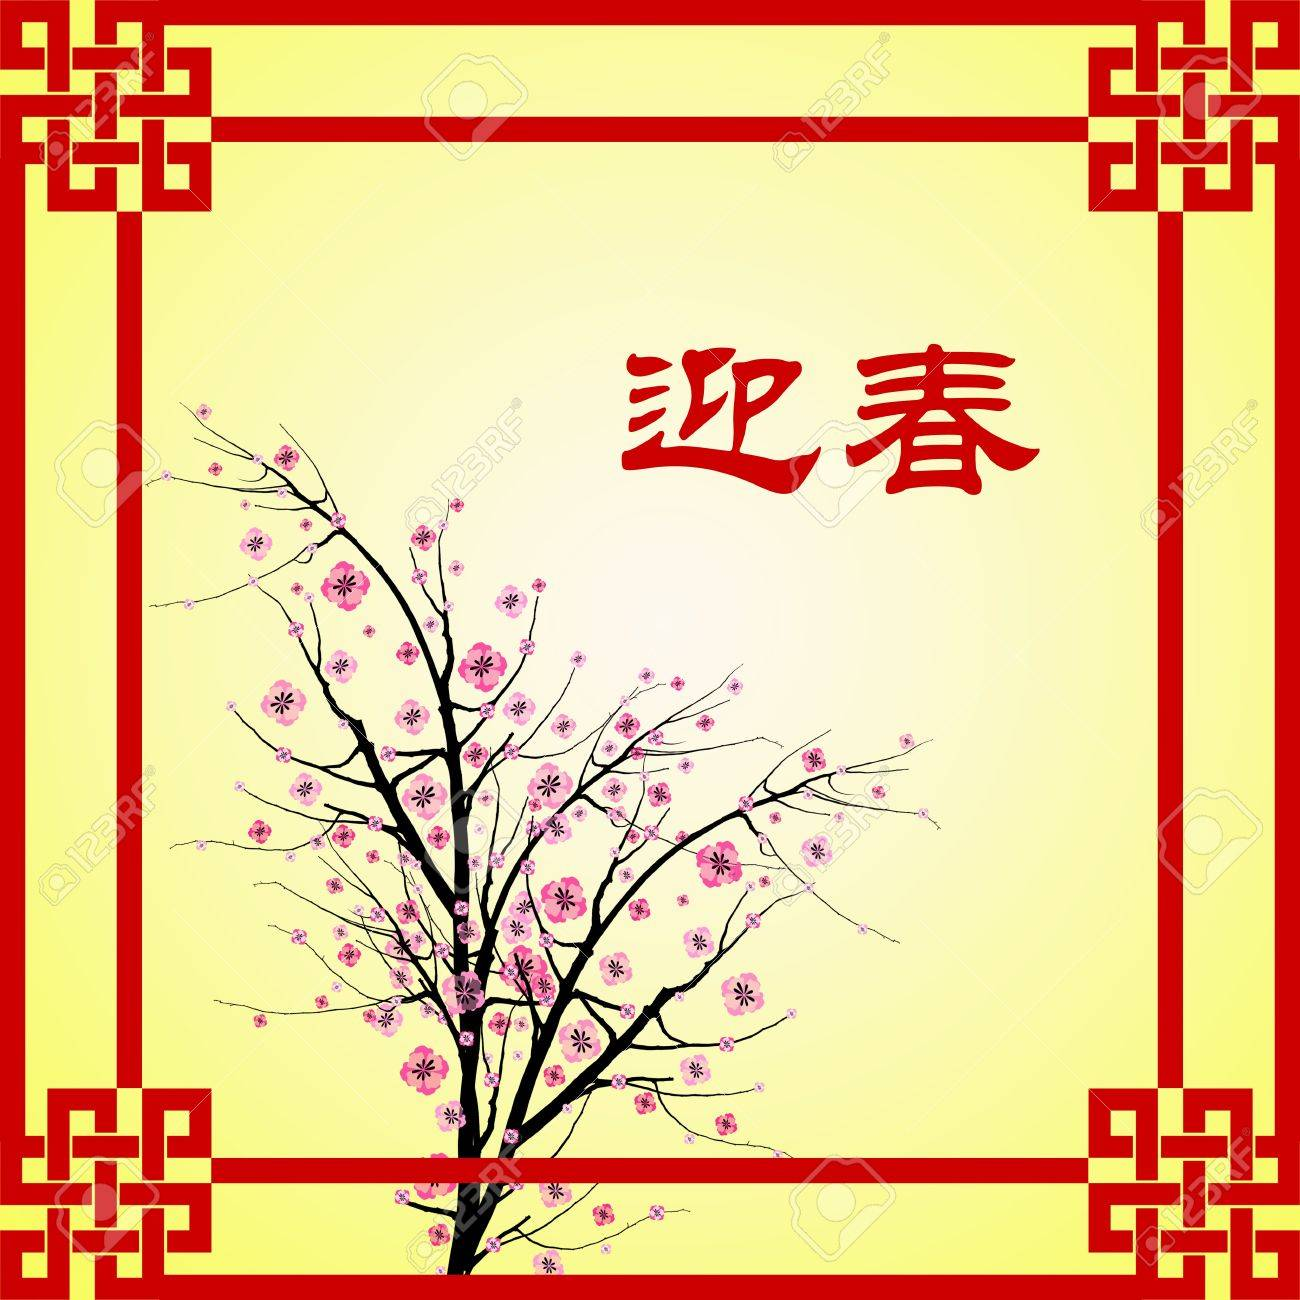 Chinese New Year greeting card background Stock Vector - 11960856